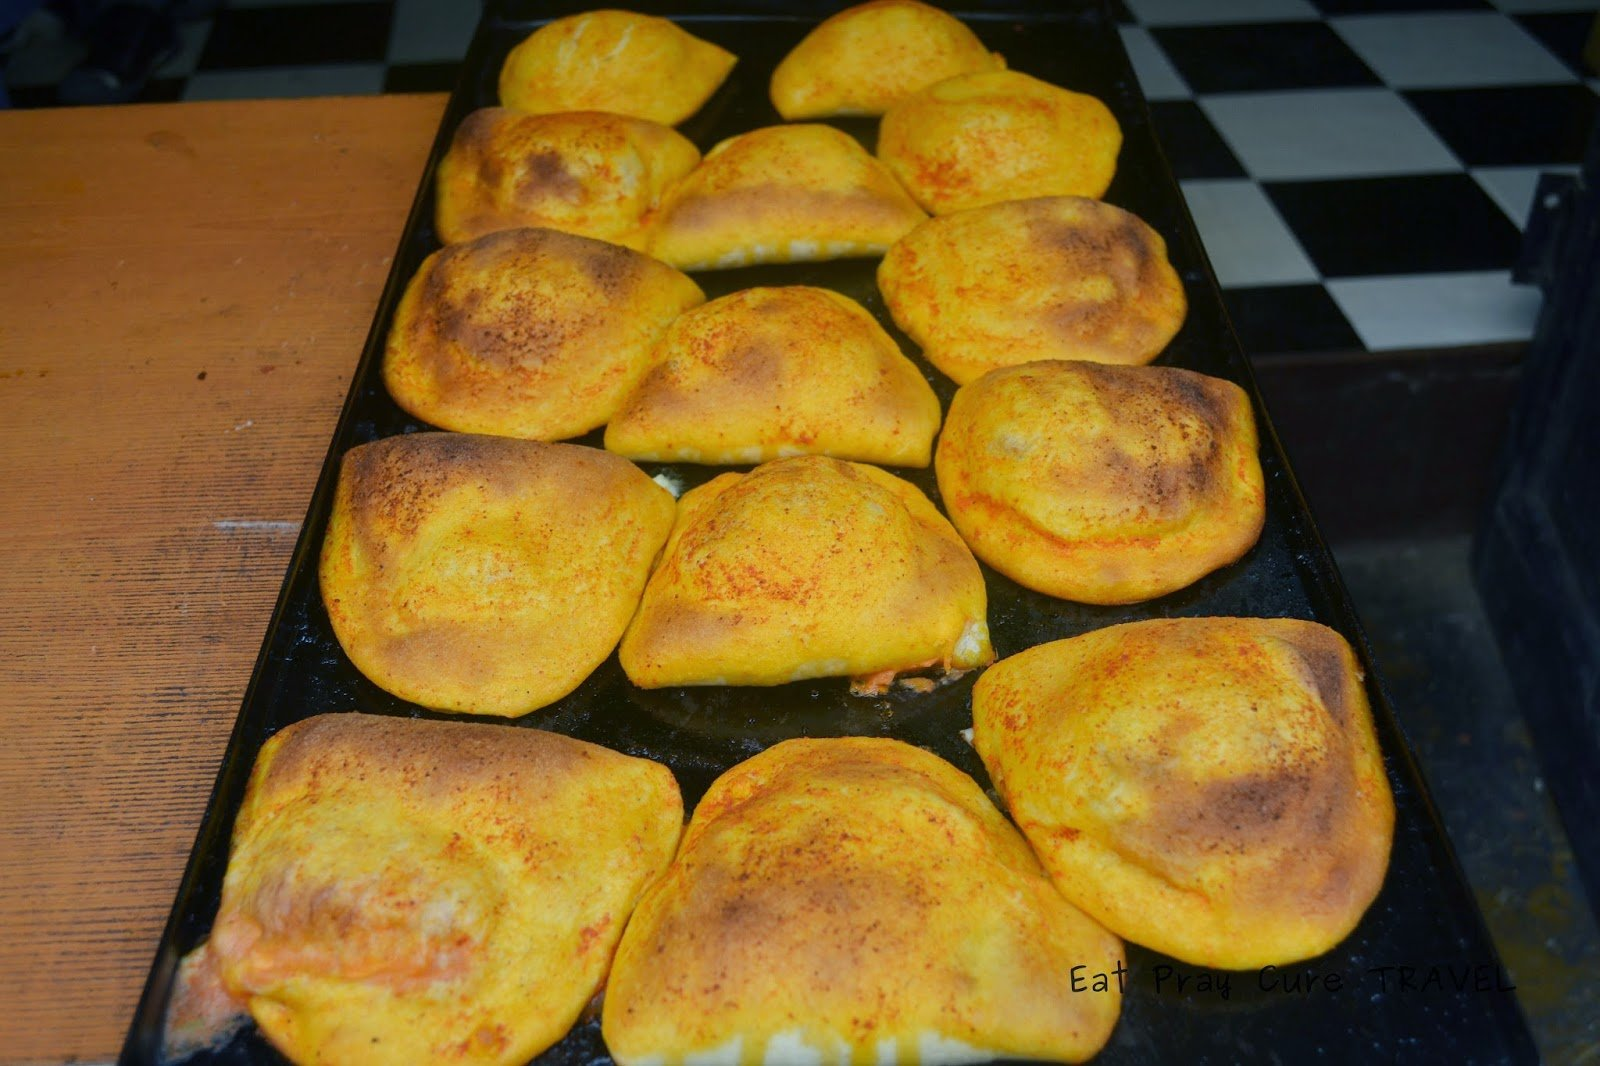 Jawitas - Cheese pastries from the Yungas